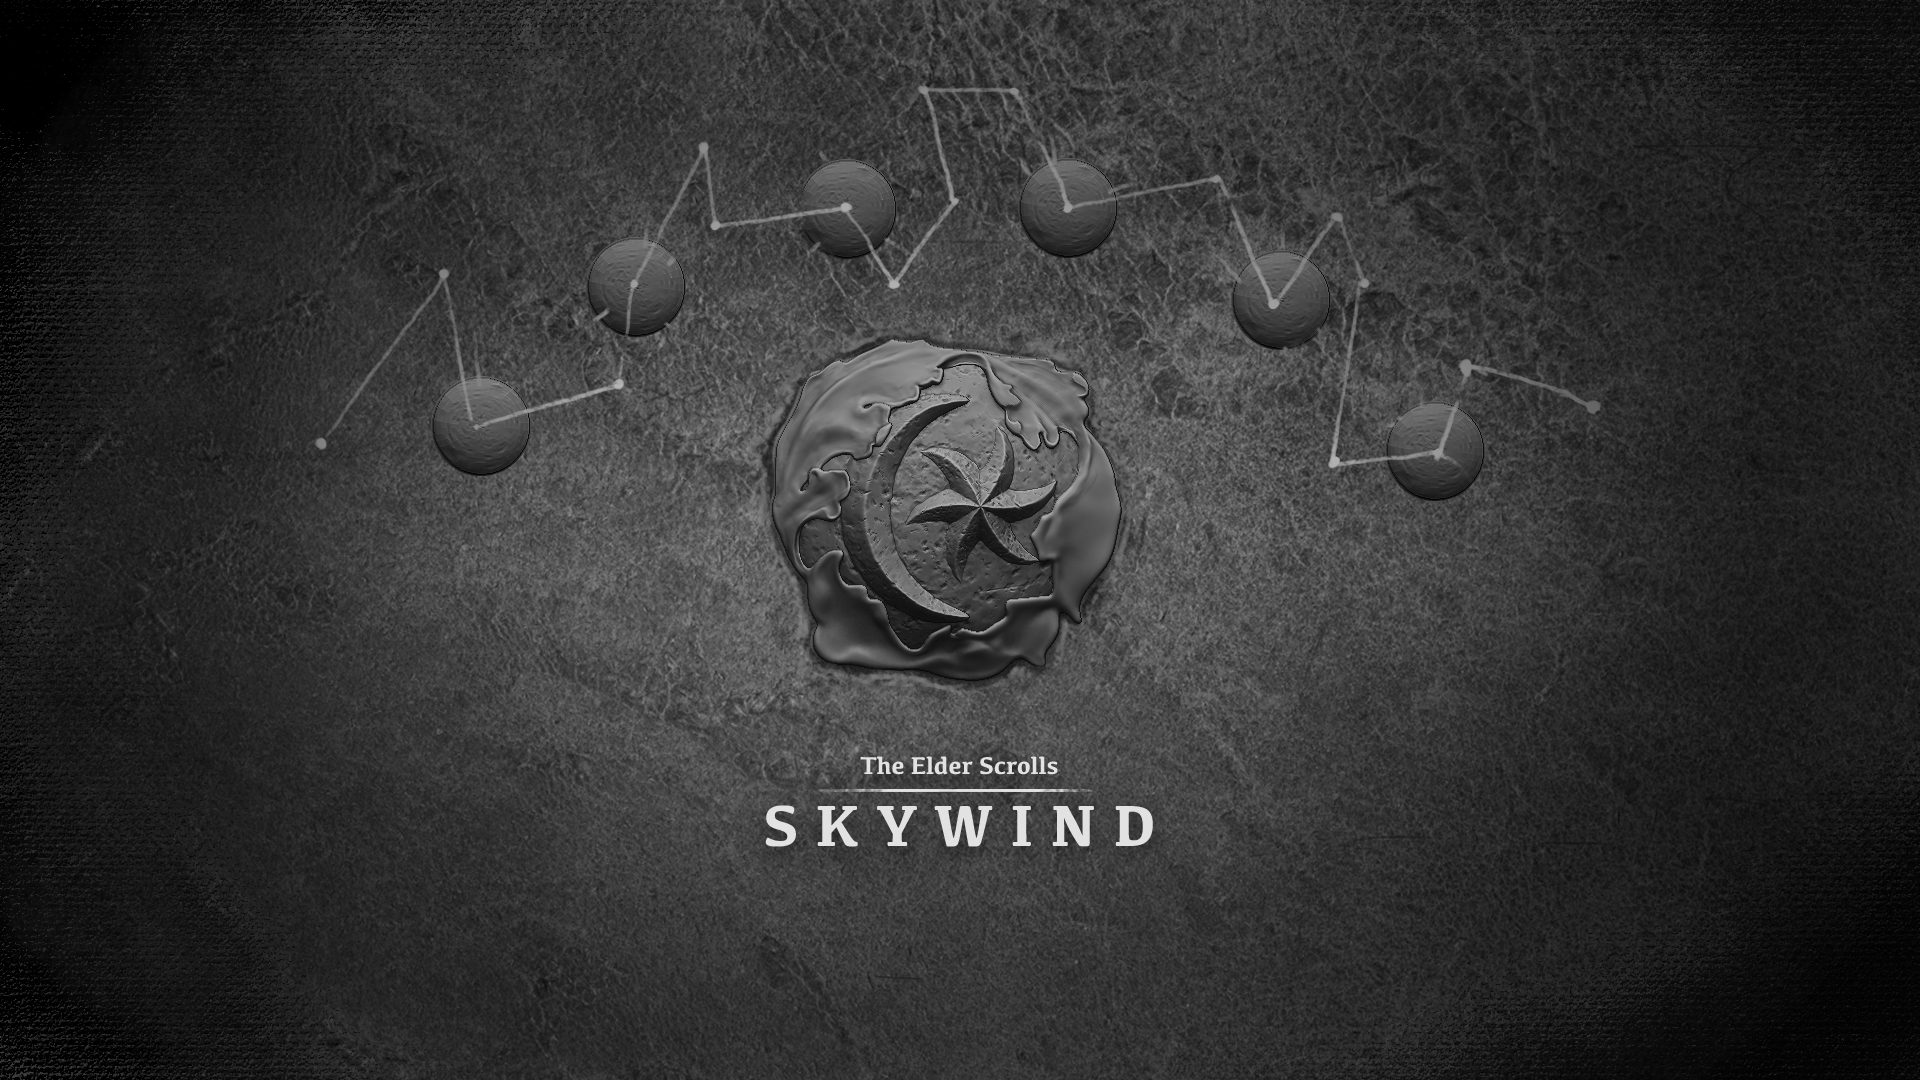 Skywind Concept logo - courtesy of TESRenewal.com